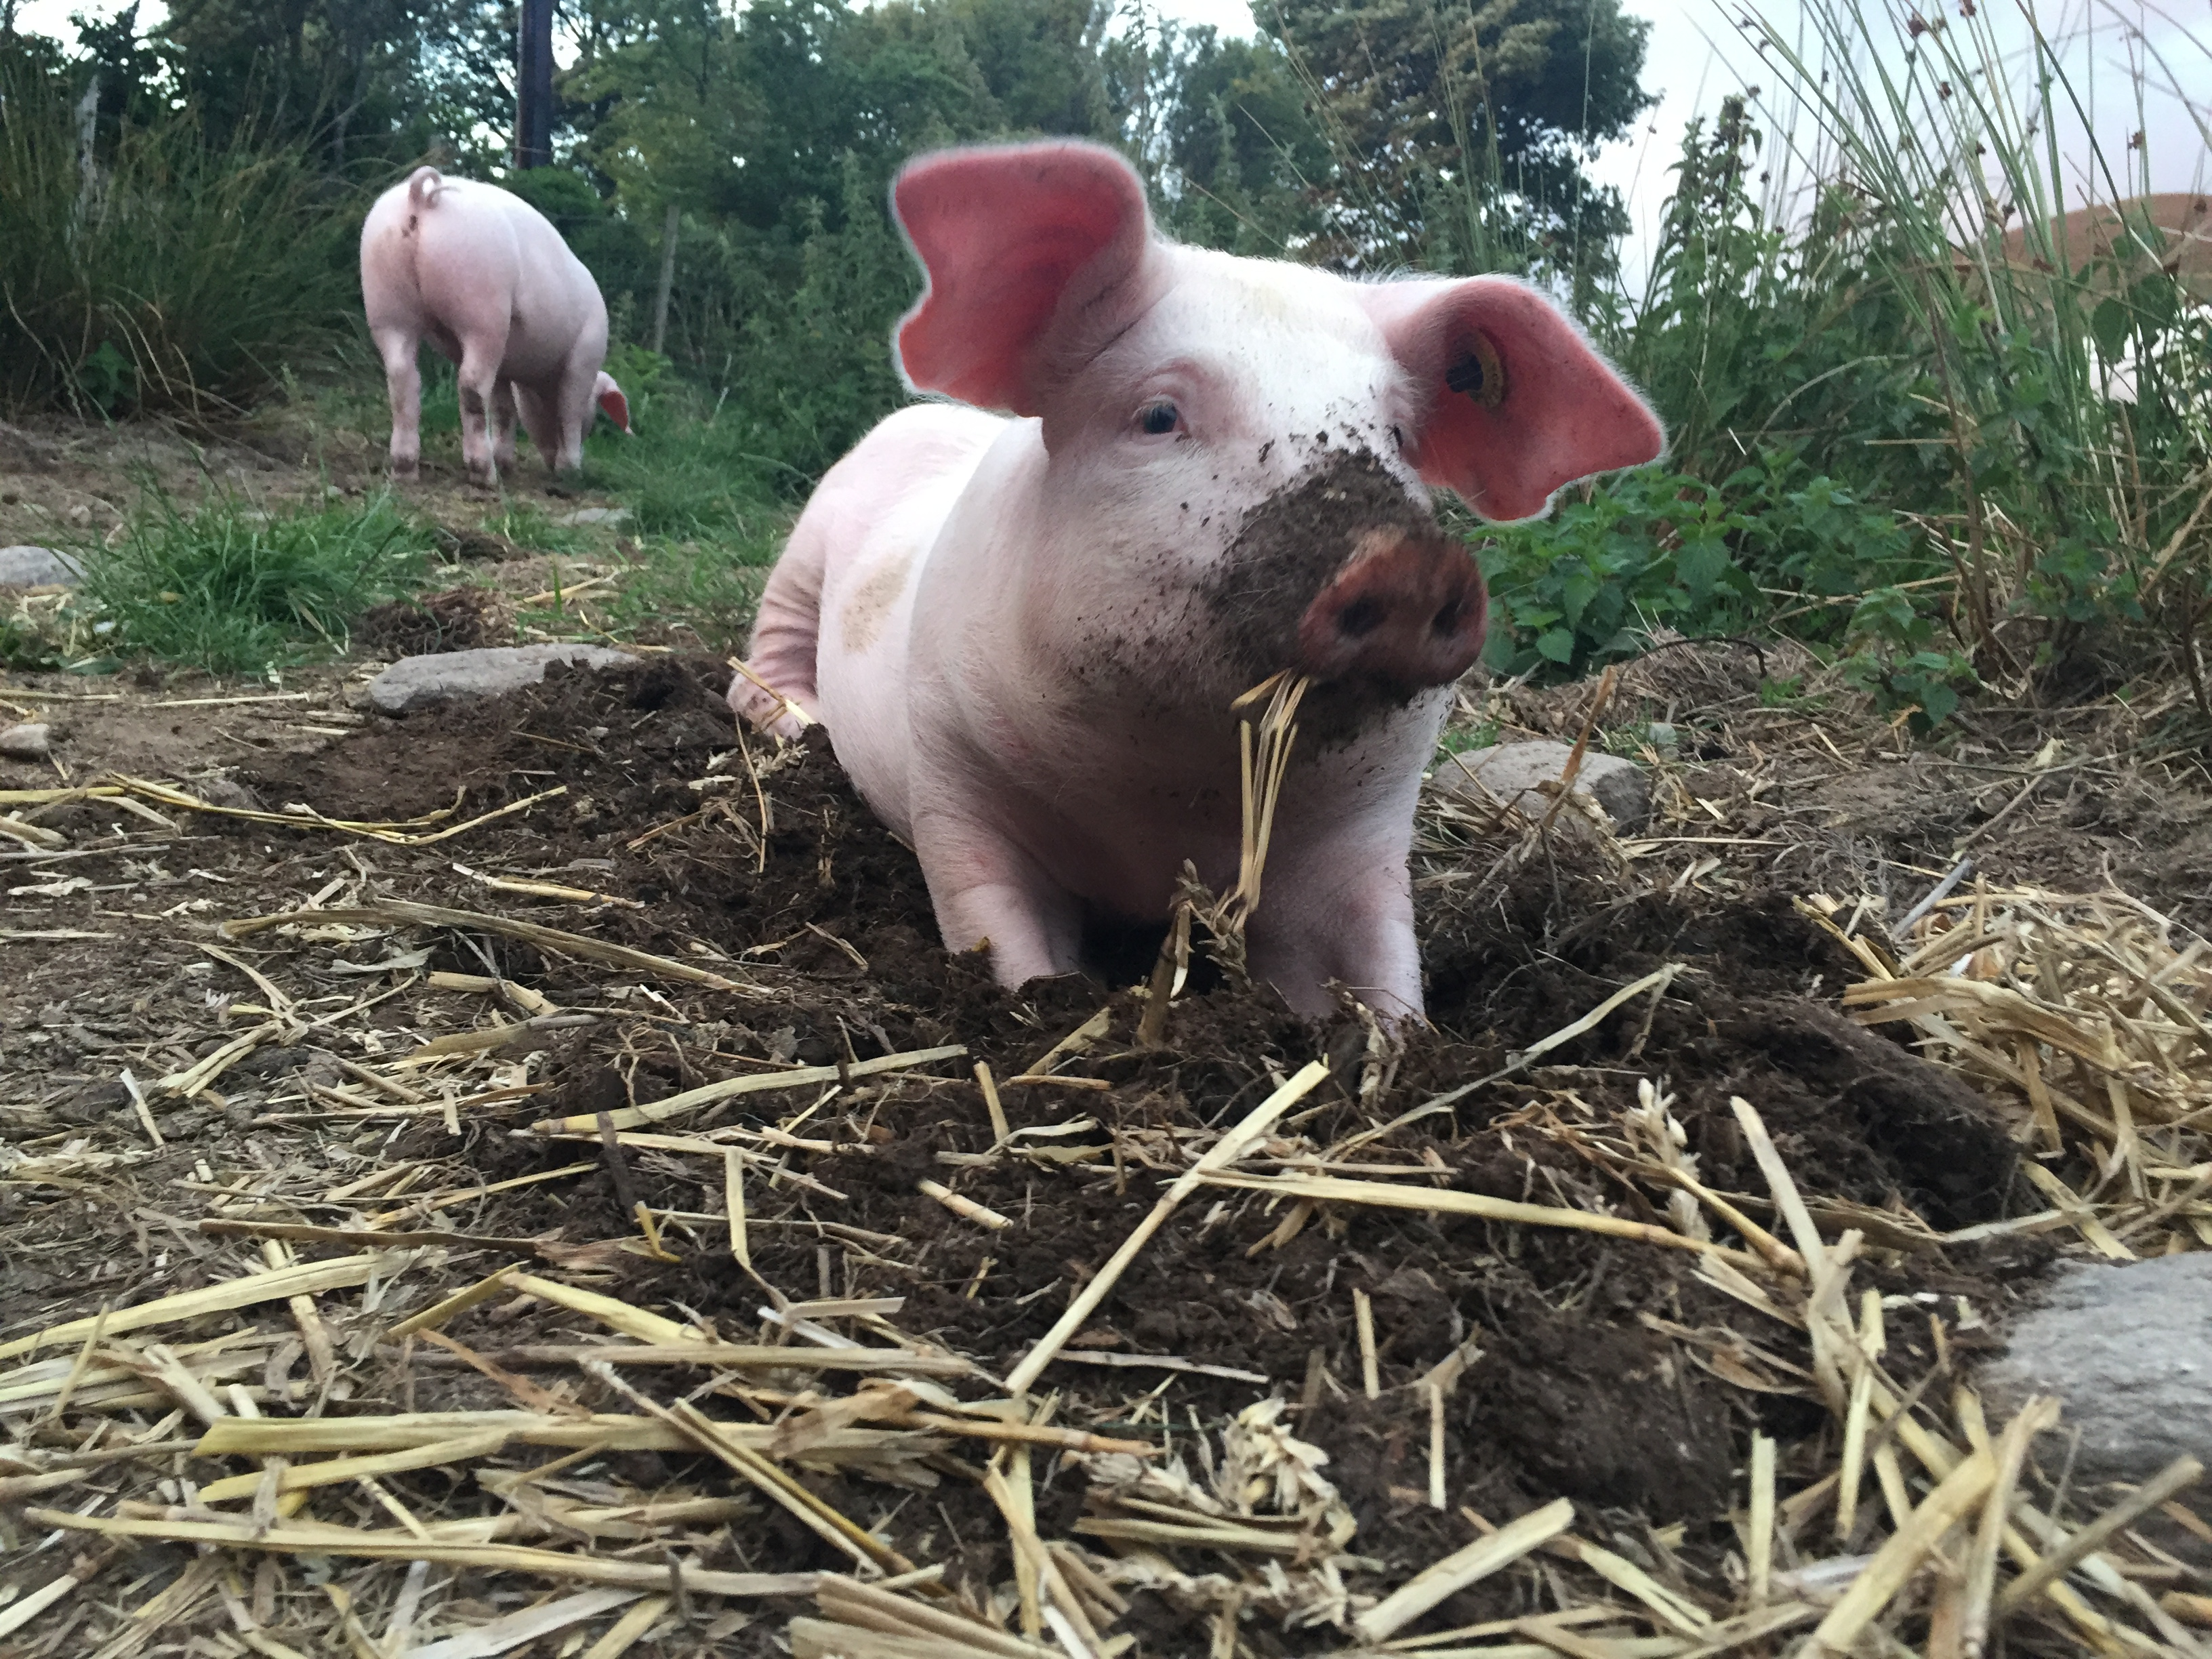 Tudur Williams on farm diversification… trotters and pig tails